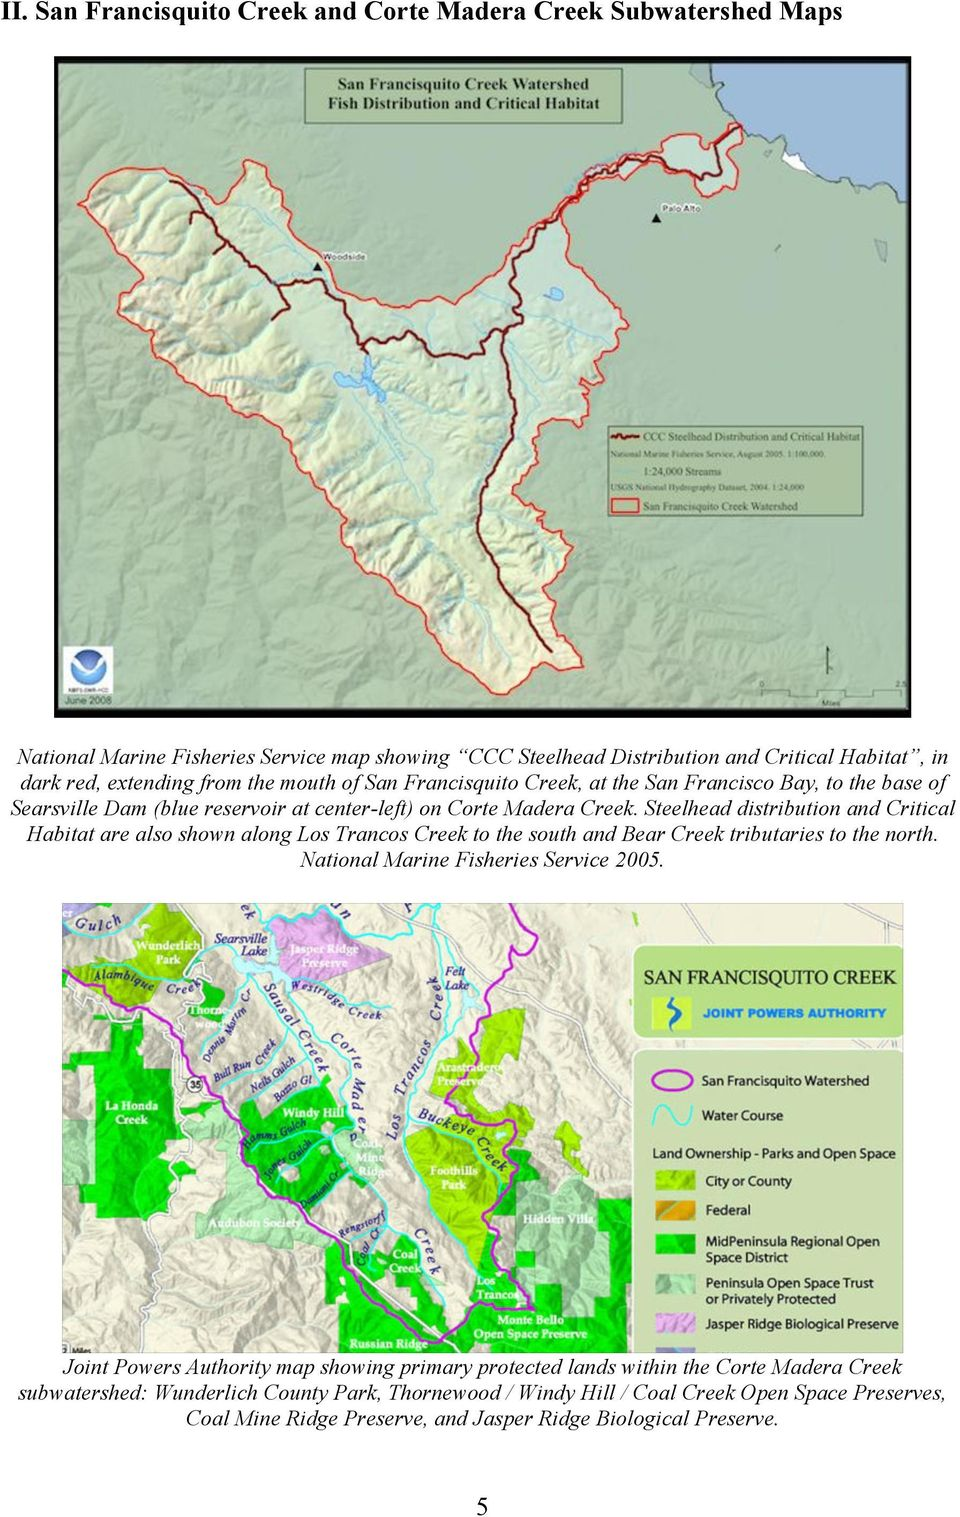 Steelhead distribution and Critical Habitat are also shown along Los Trancos Creek to the south and Bear Creek tributaries to the north. National Marine Fisheries Service 2005.